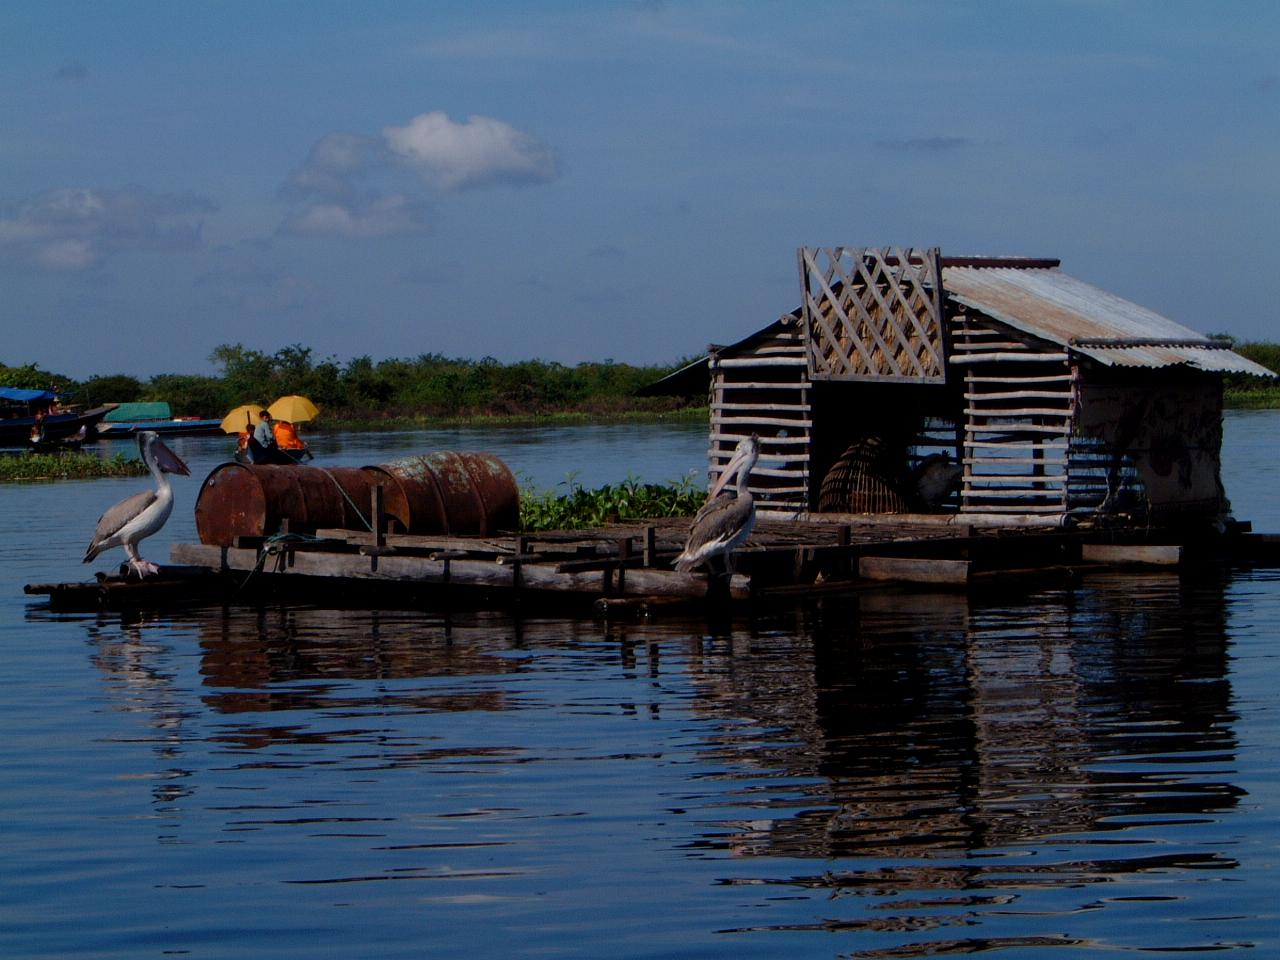 Chong Kneas floating village on Tonle Sap Lake